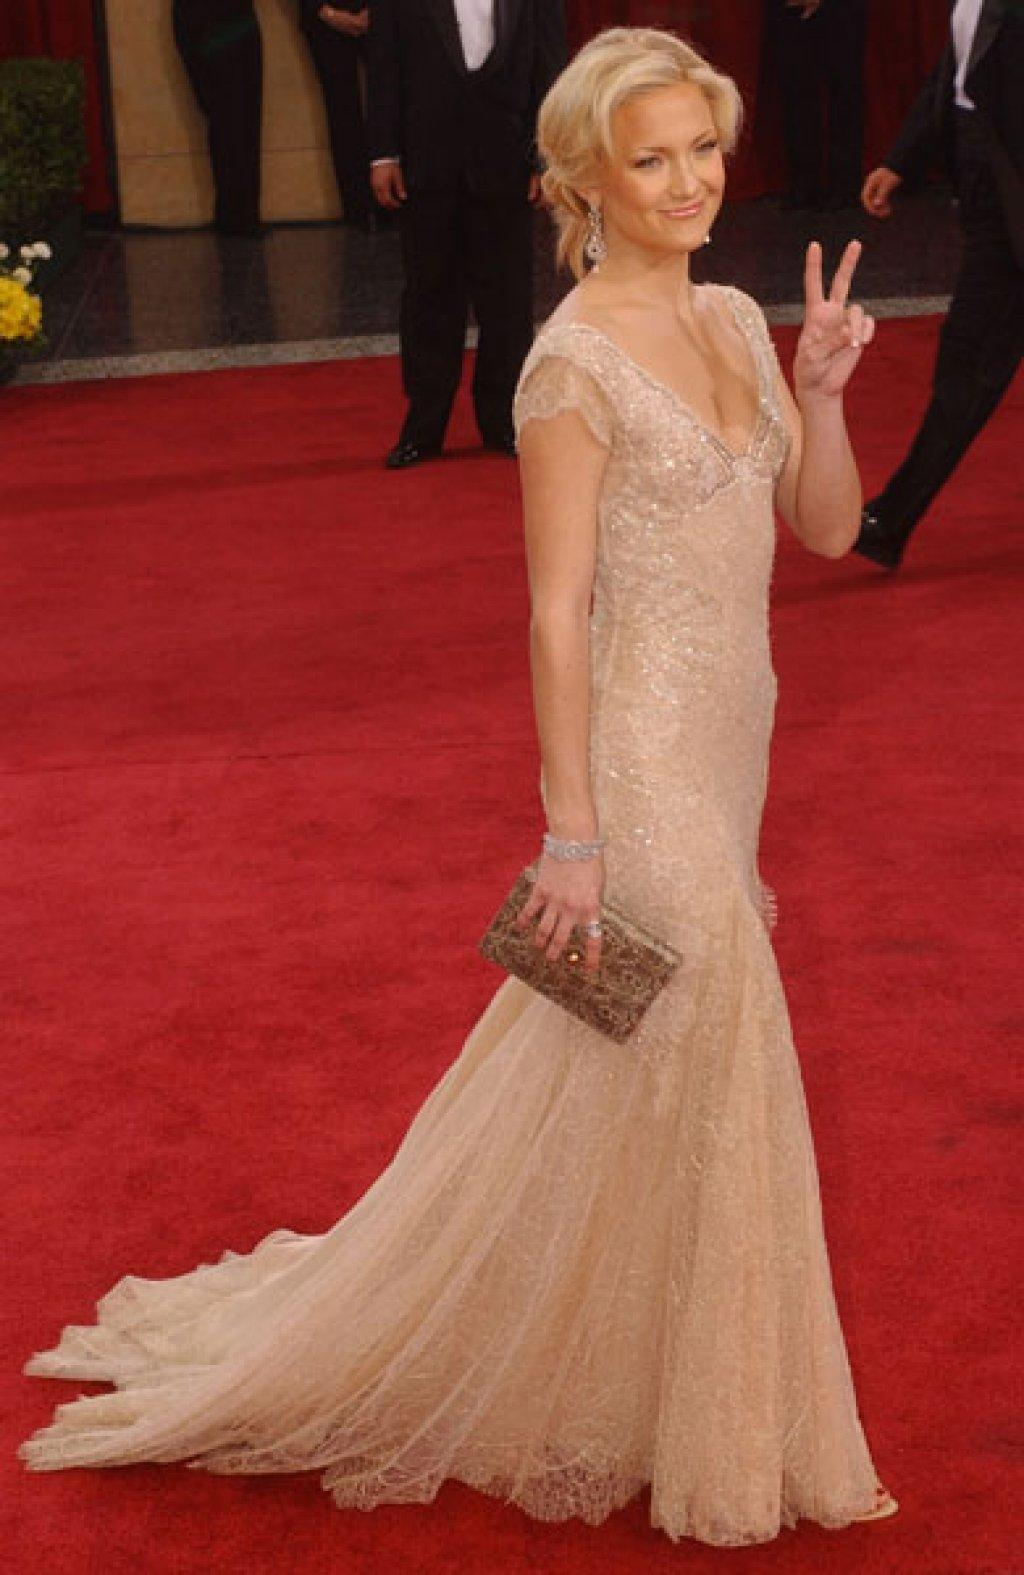 Kate Hudson wearing Versace The 75th Annual Academy Awards - Arrivals The Kodak Theater Hollywood, California USA March 23, 2003 Photo by Gus Ruelas/WireImage.com To license this image (988943), contact WireImage.com